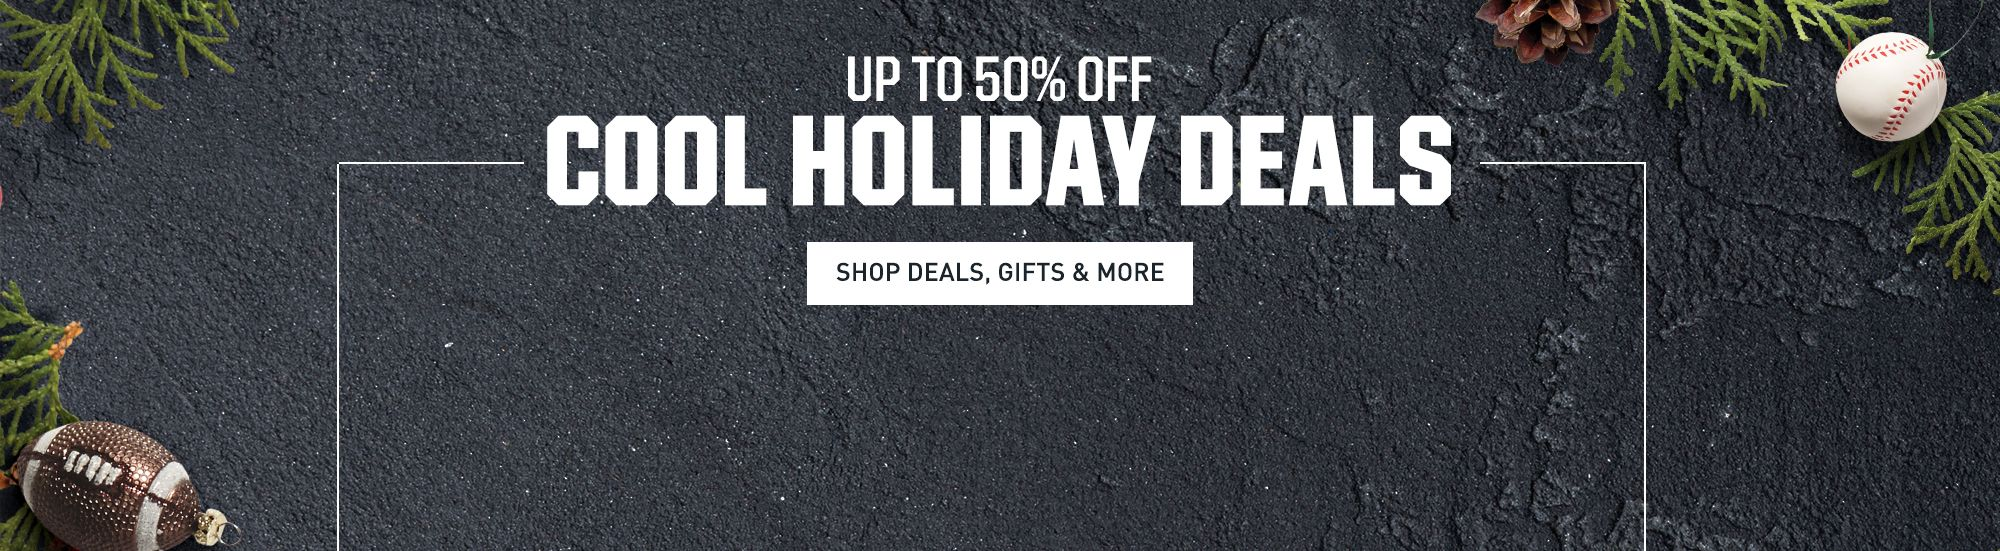 Cool Holiday Deals - Shop Deals, Gifts & More